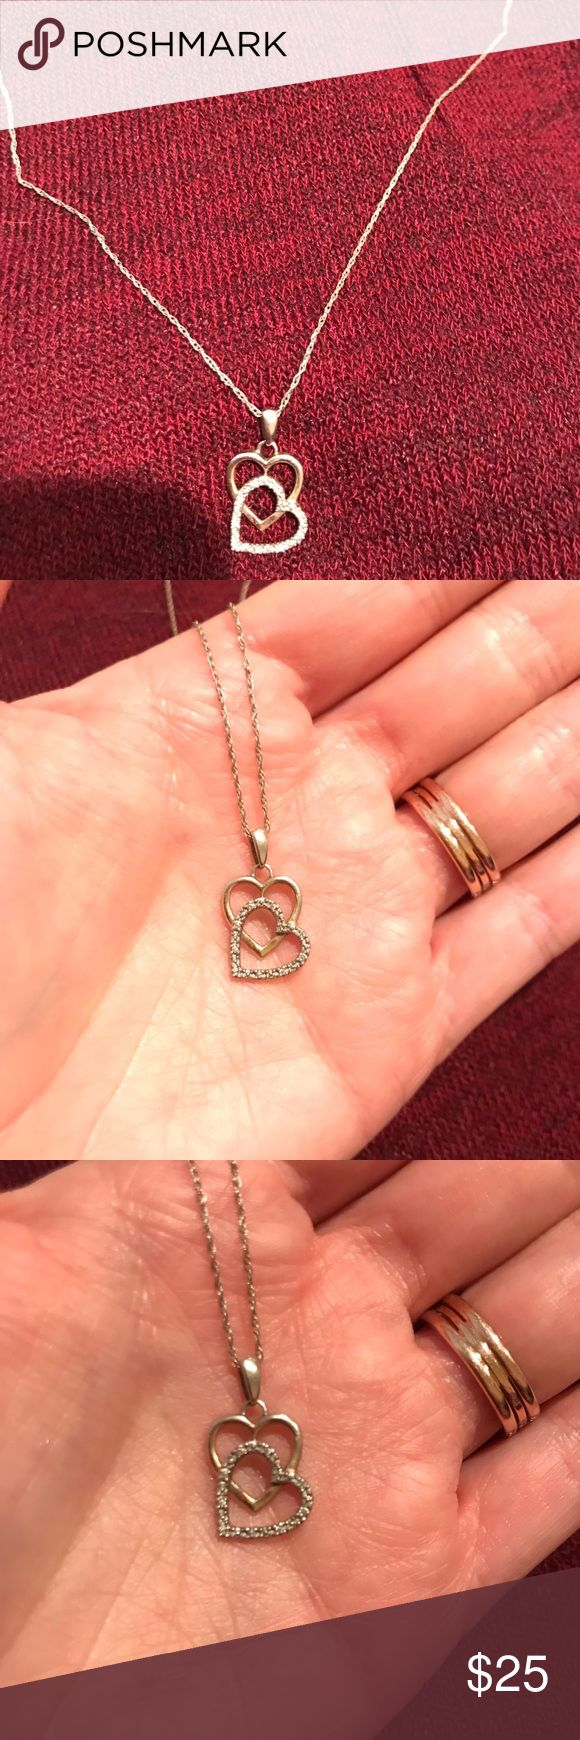 Diamond heart necklace Real gold plated, gold chain and 10 small diamonds, needs polishing Jewelry Necklaces